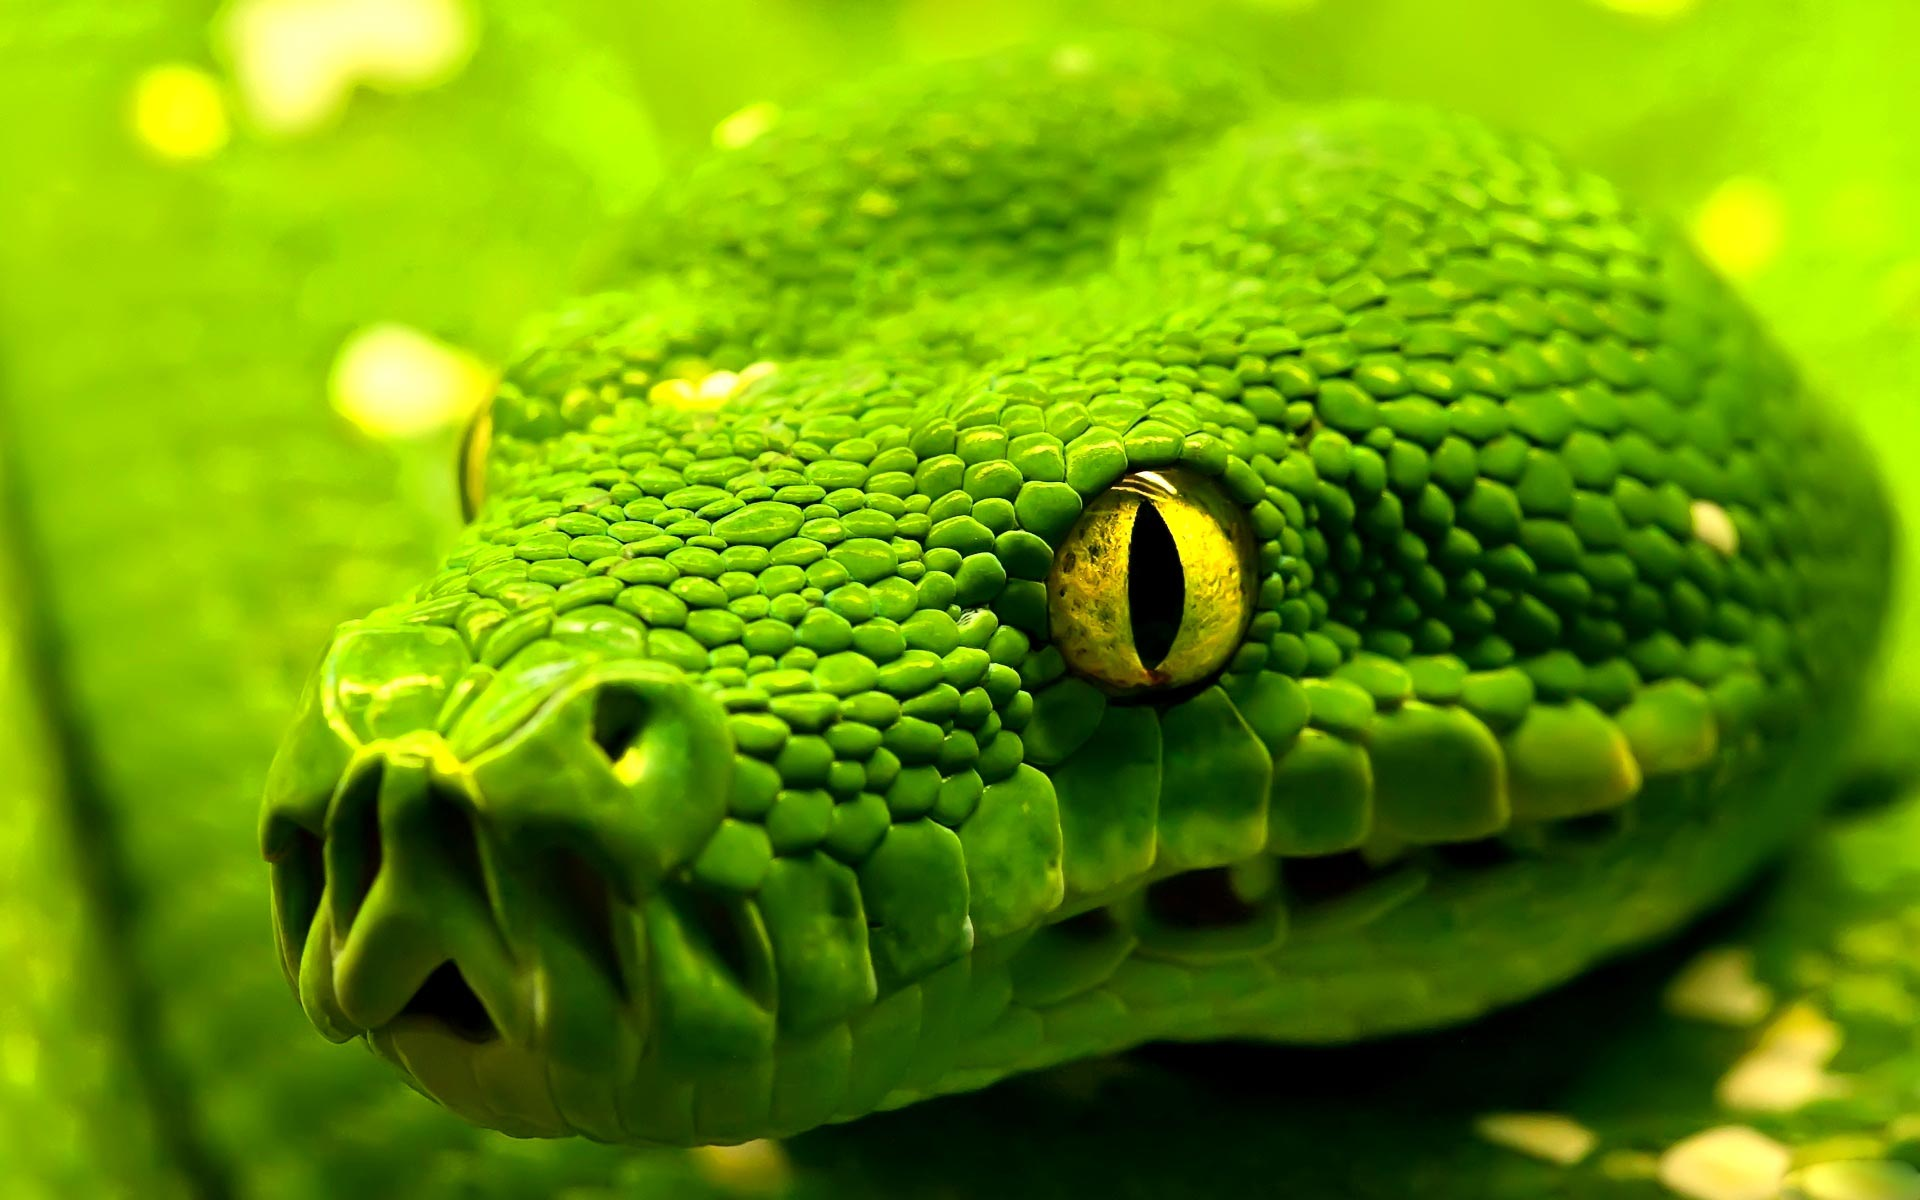 beautiful green snake hd wallpapers cool desktop background images 1920x1200